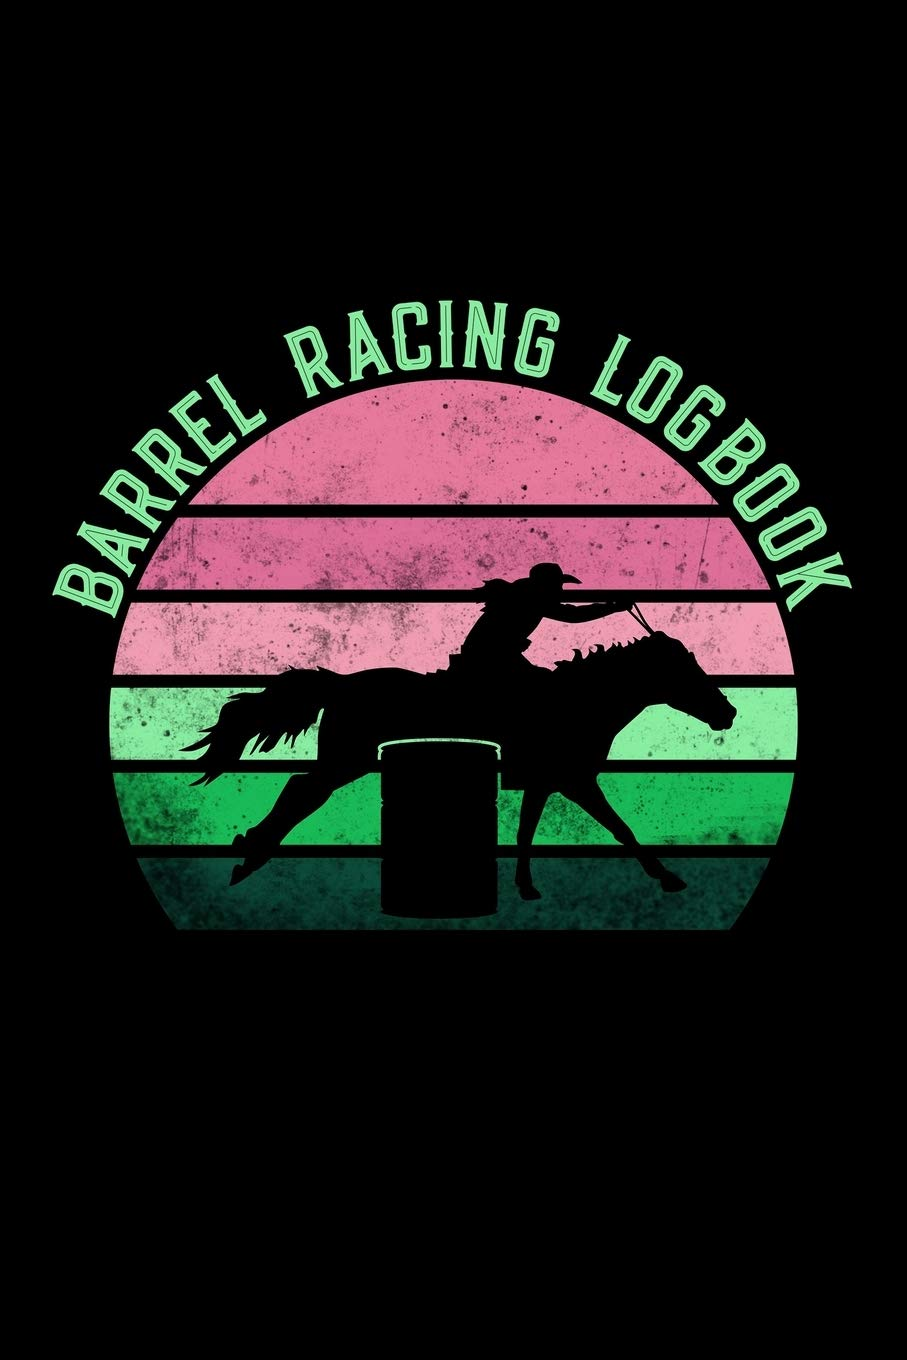 Barrel Racing Logbook: Barrel Racer Tracker - Horse Lovers Log Book - Pole Bending Diary For Rodeo Cowgirls